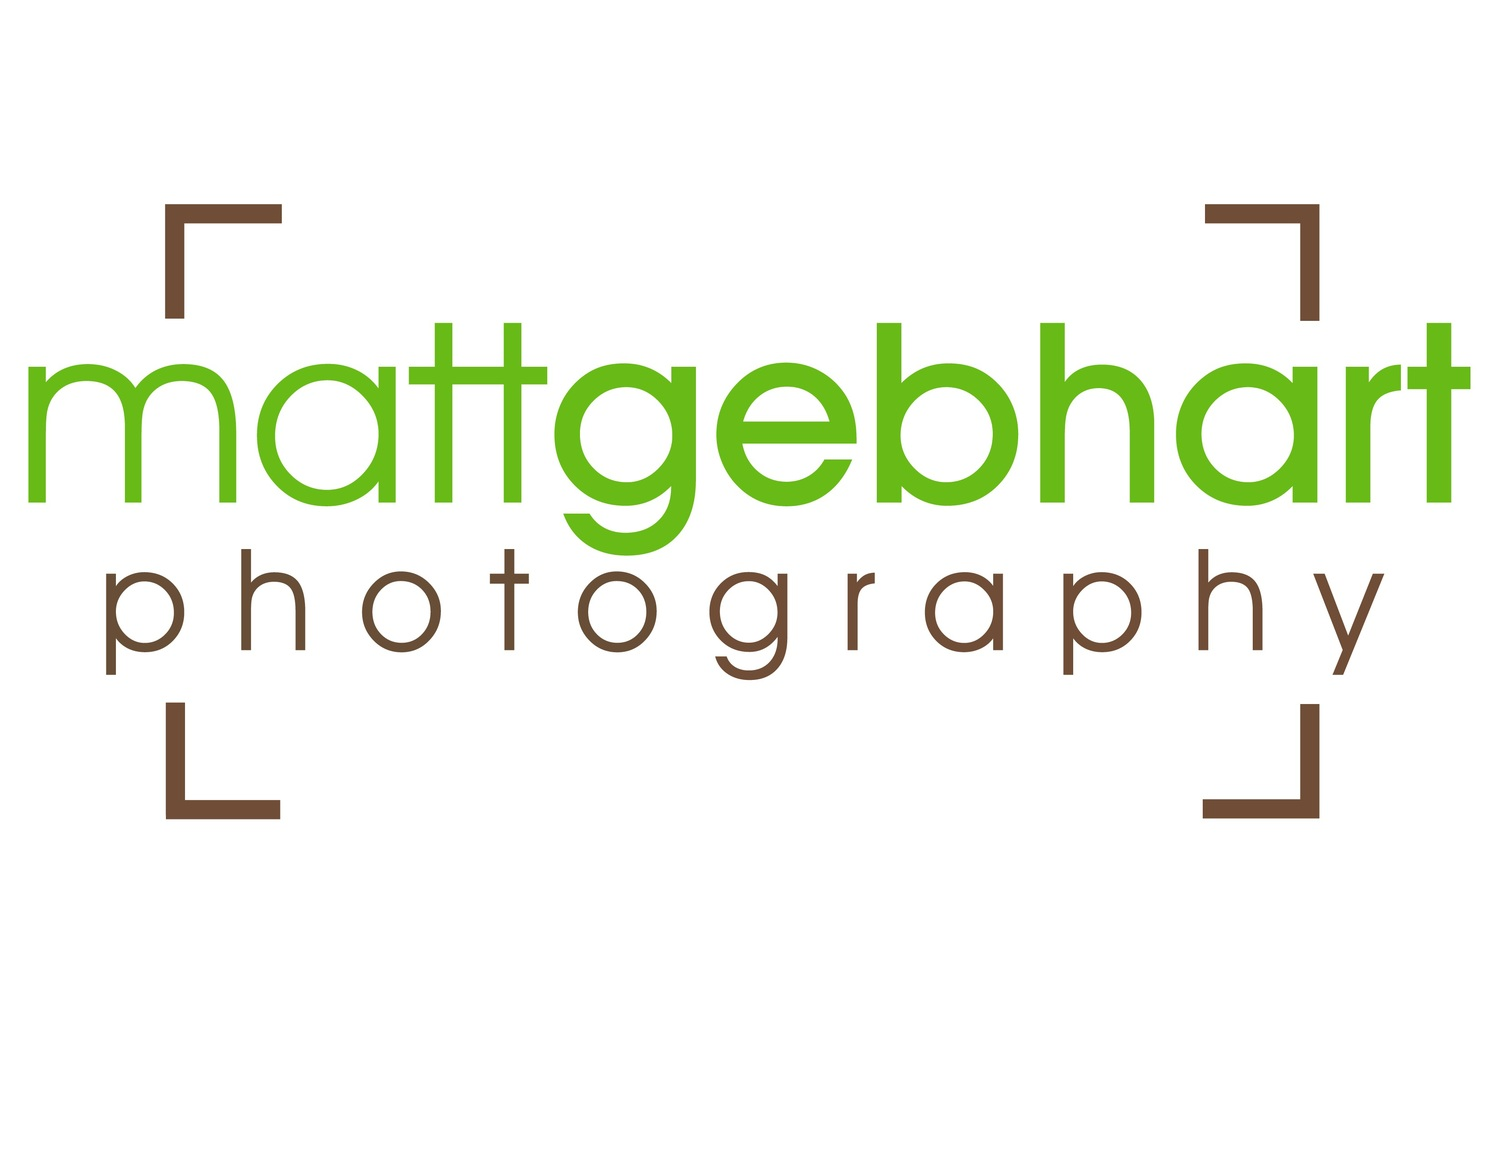 matt gebhart photography